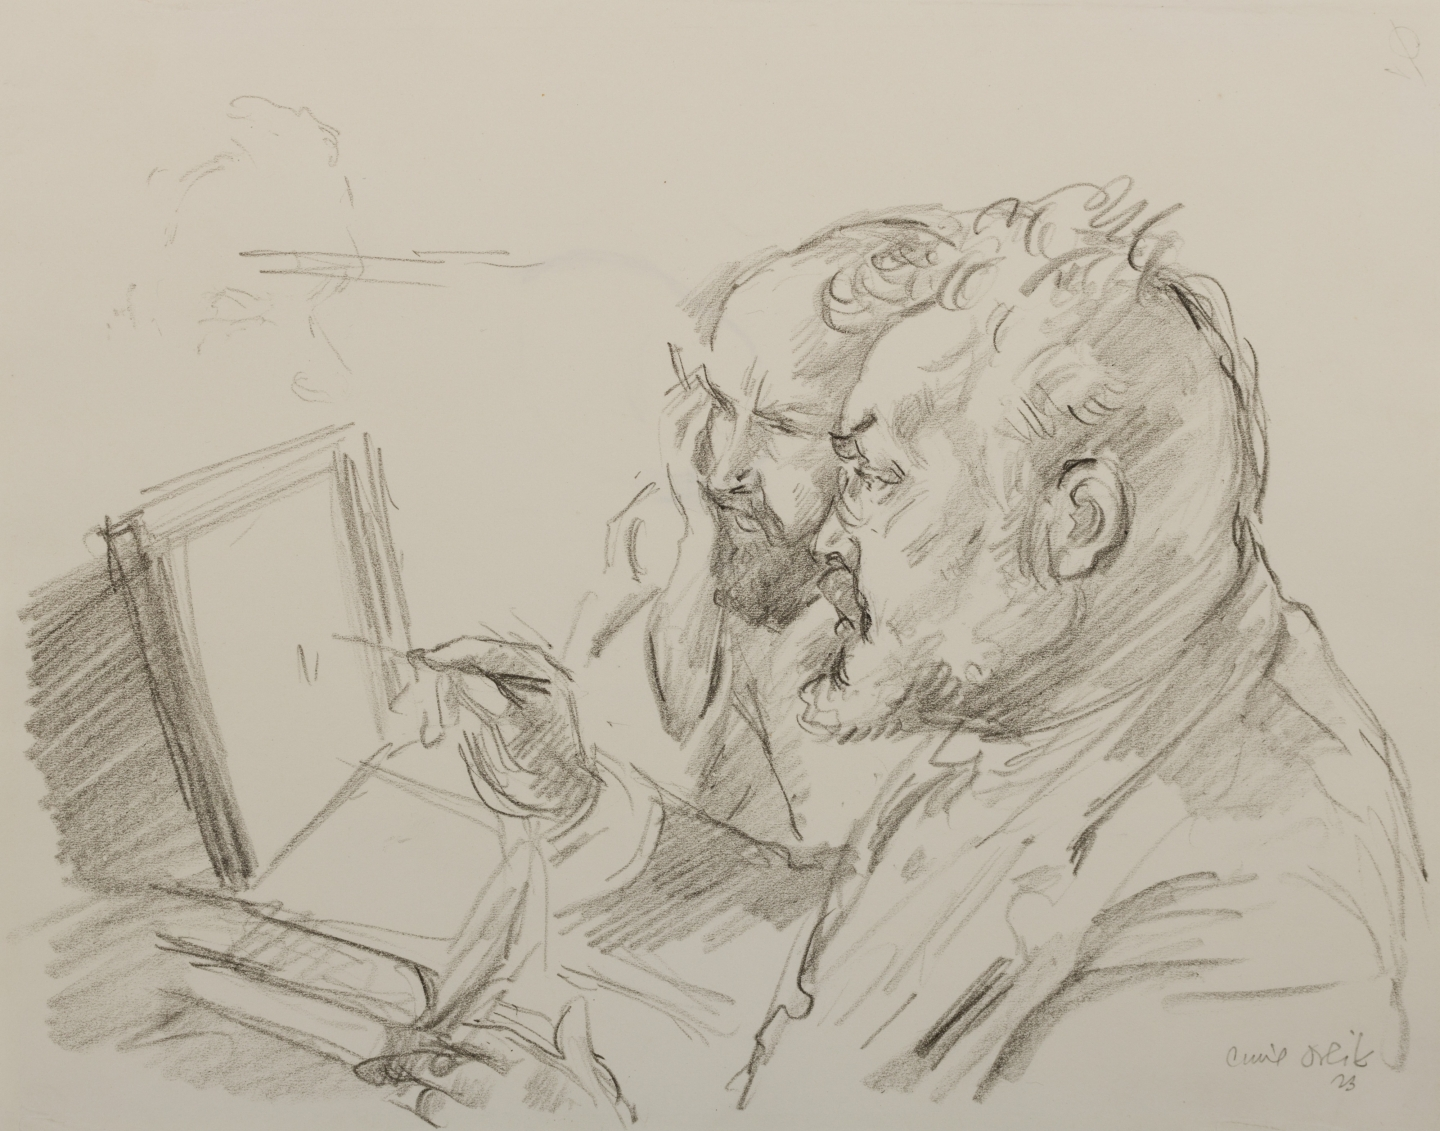 Emil Orlik (Prague 1870-1932 Berlin) Max Slevogt and his collector Dr. Josef Grünberg (1923)